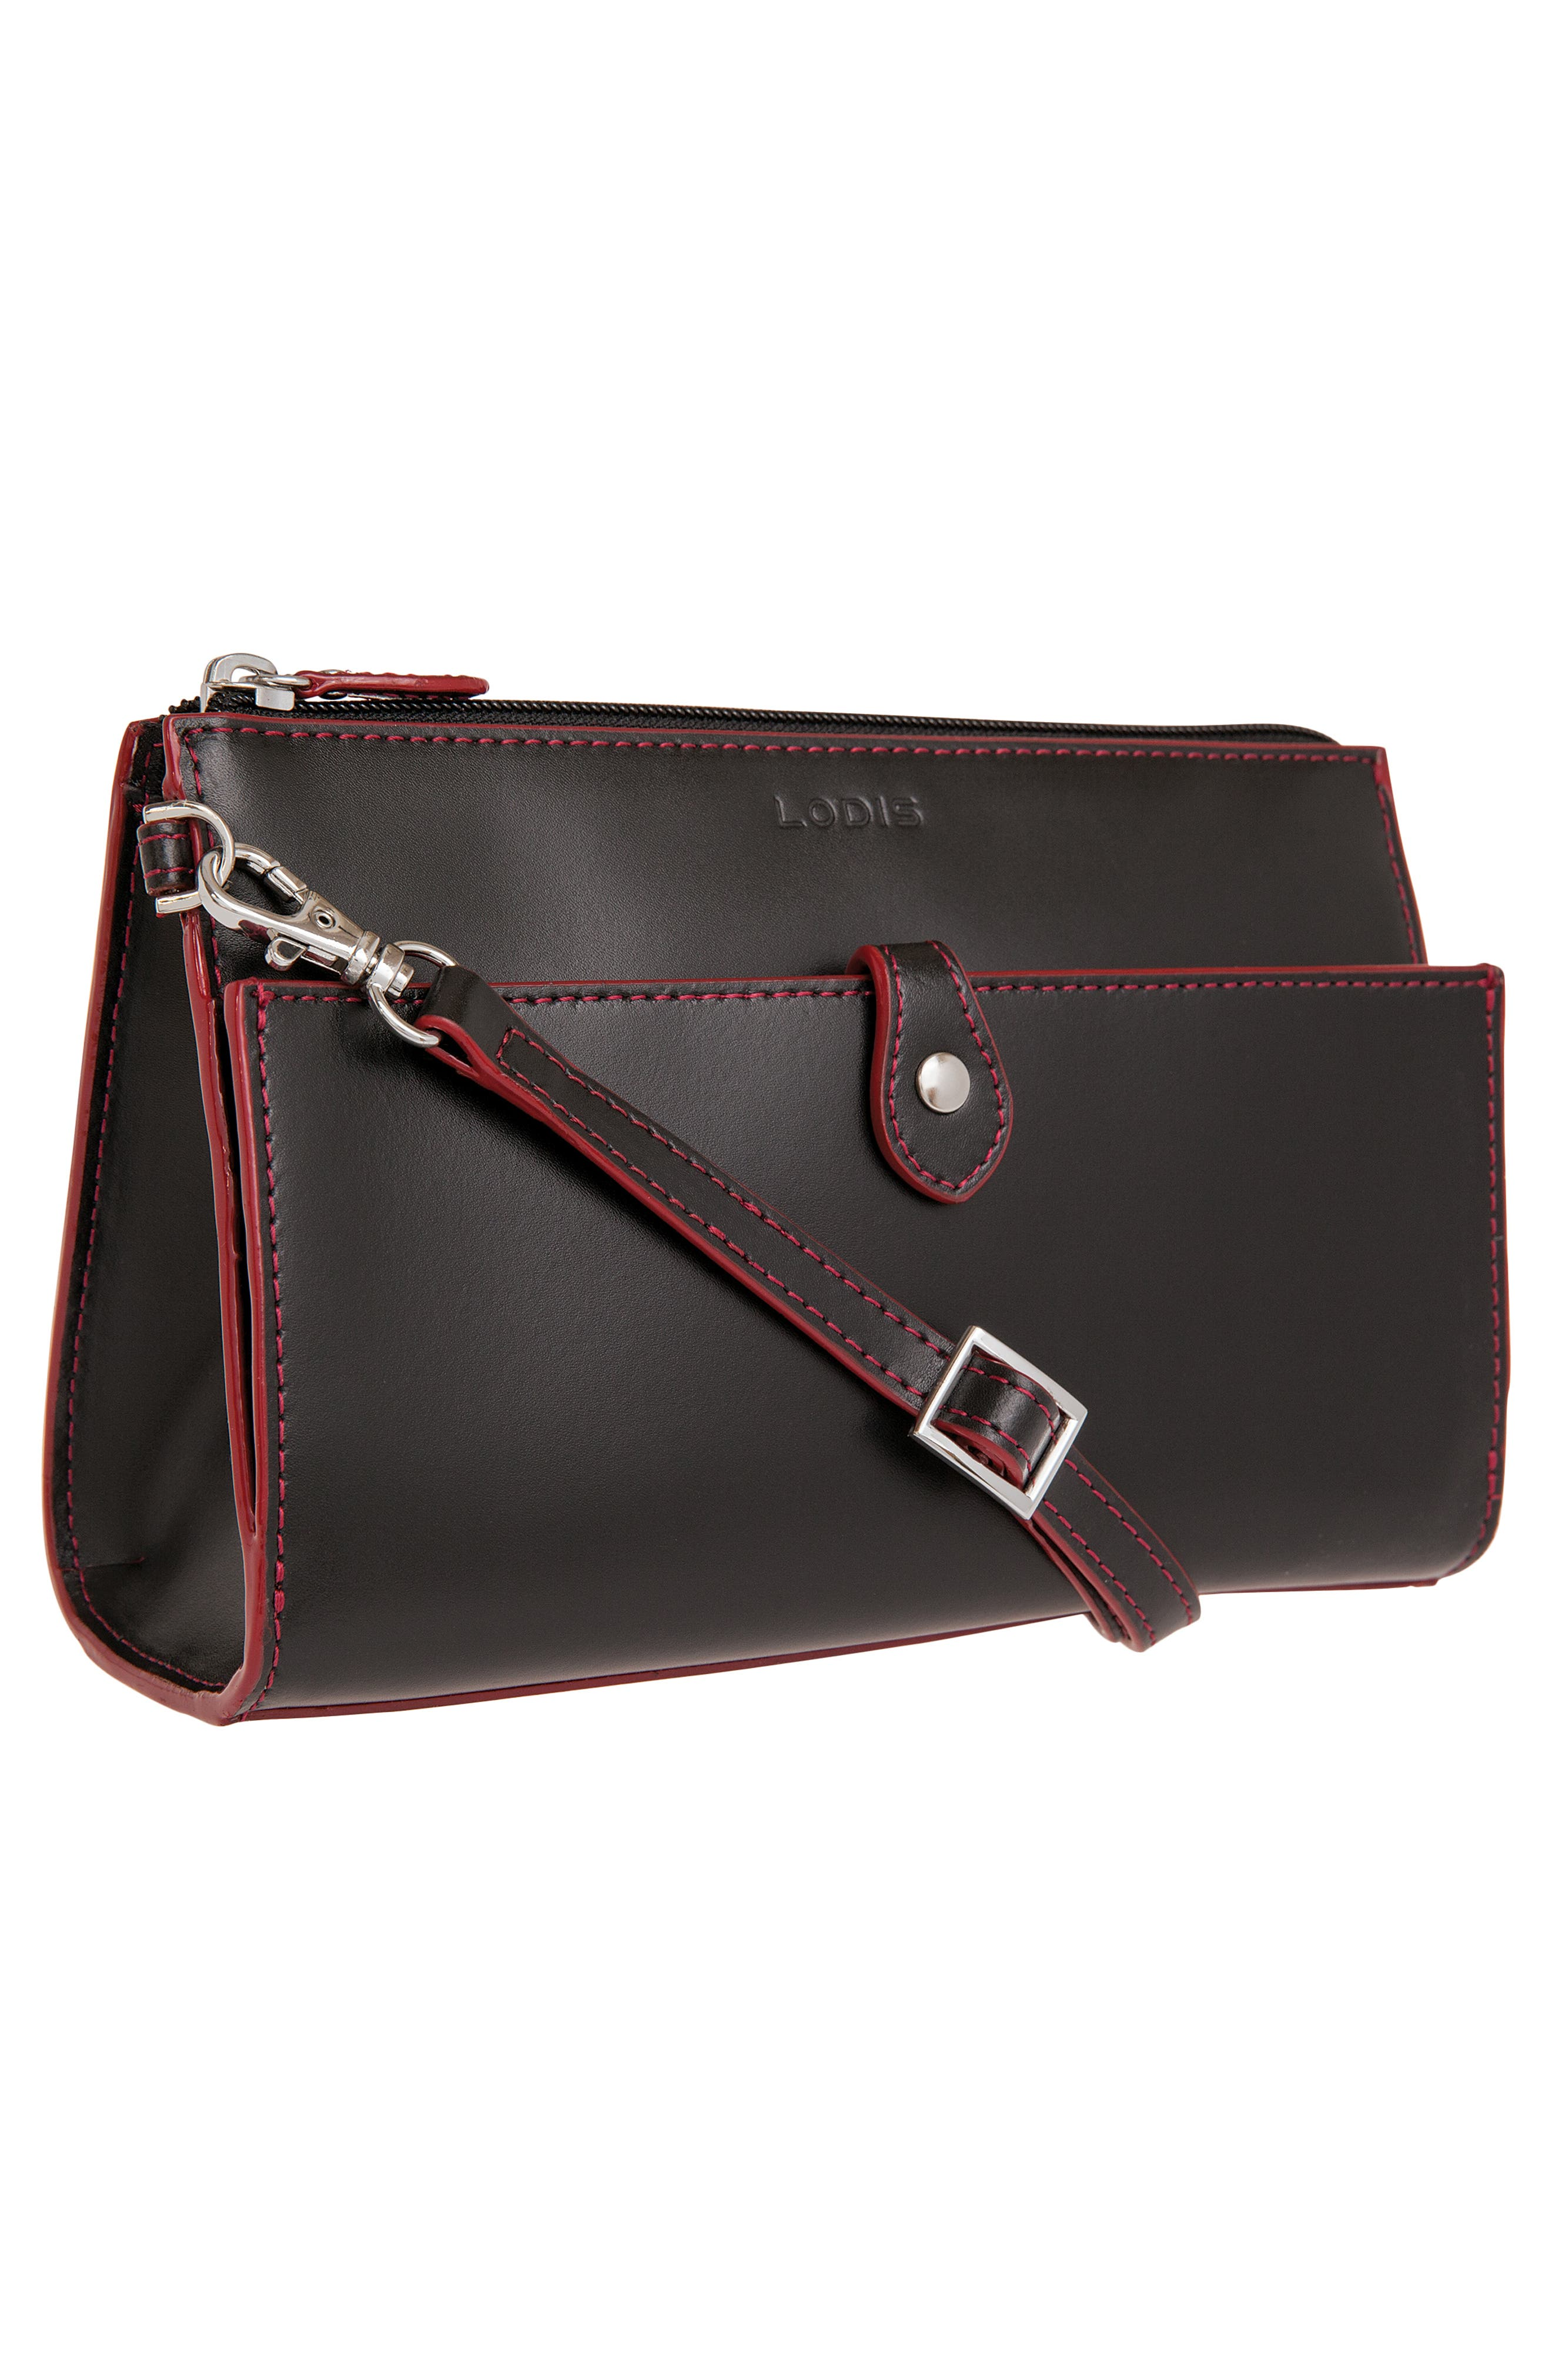 Audrey Under Lock & Key Vicky Convertible Leather Crossbody Bag,                             Alternate thumbnail 5, color,                             001